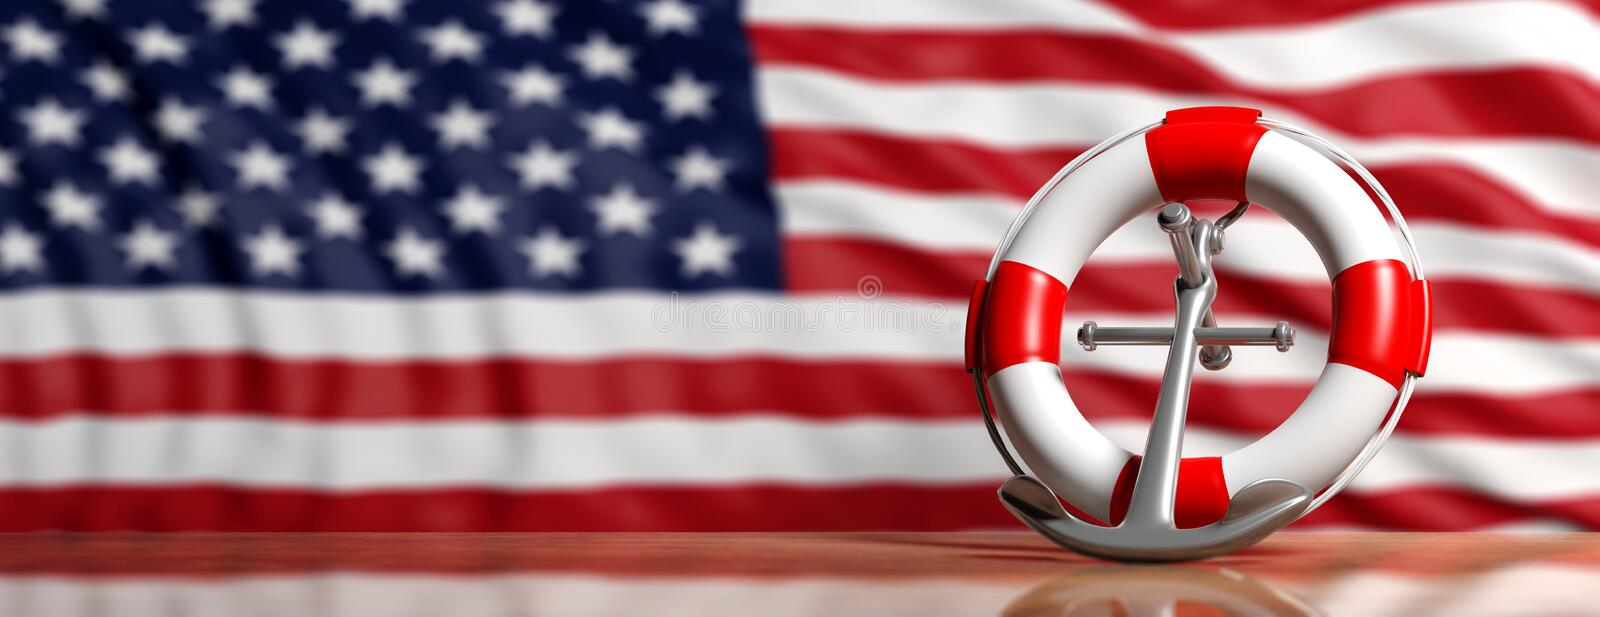 Lifebuoy and ship anchor on US of America flag background, banner. 3d illustration royalty free illustration